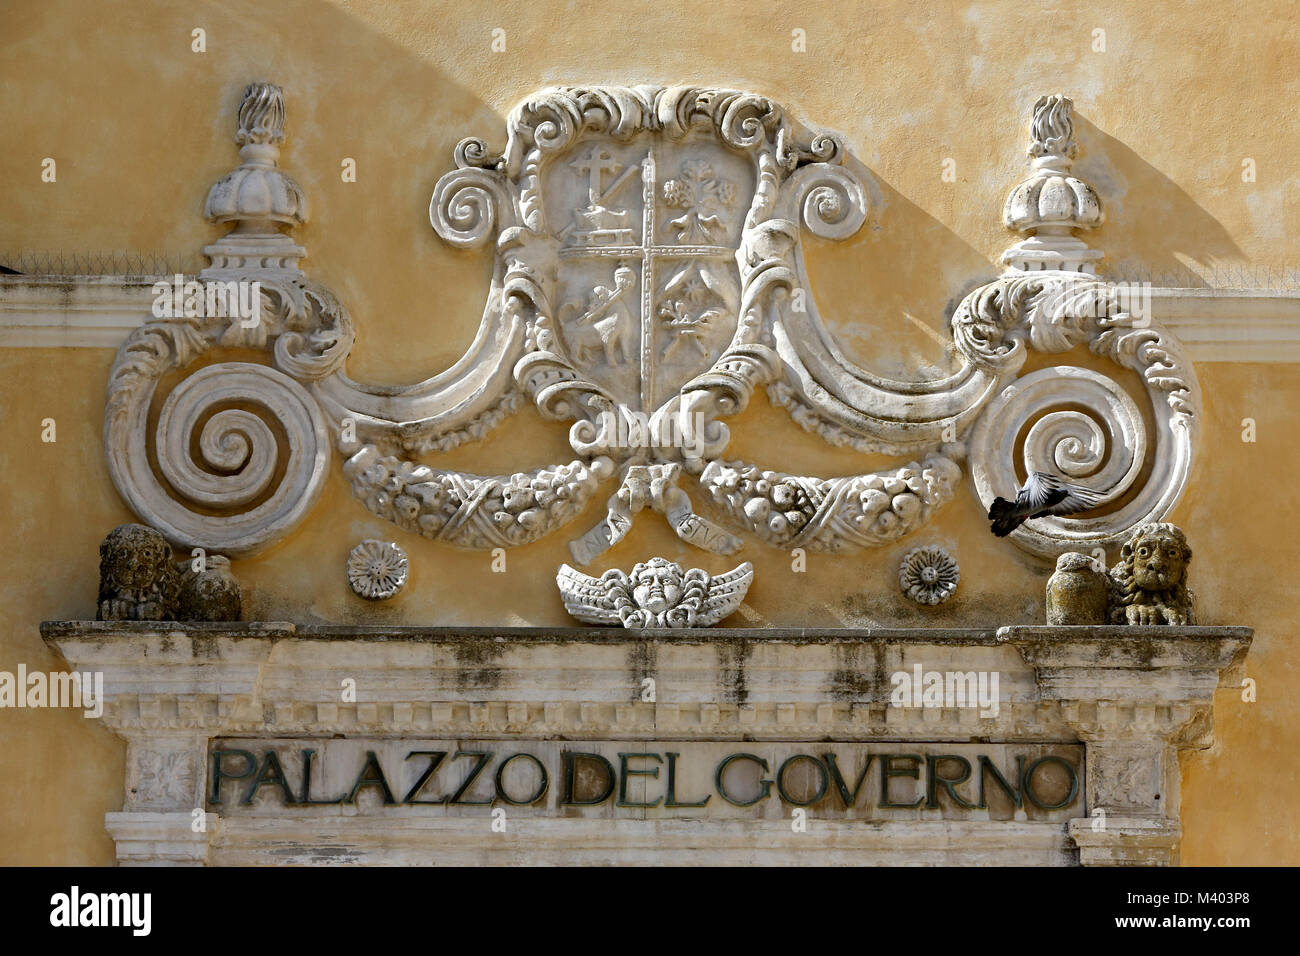 Italy, Basilicata, Matera, Detail of the Government's Palace - Stock Image